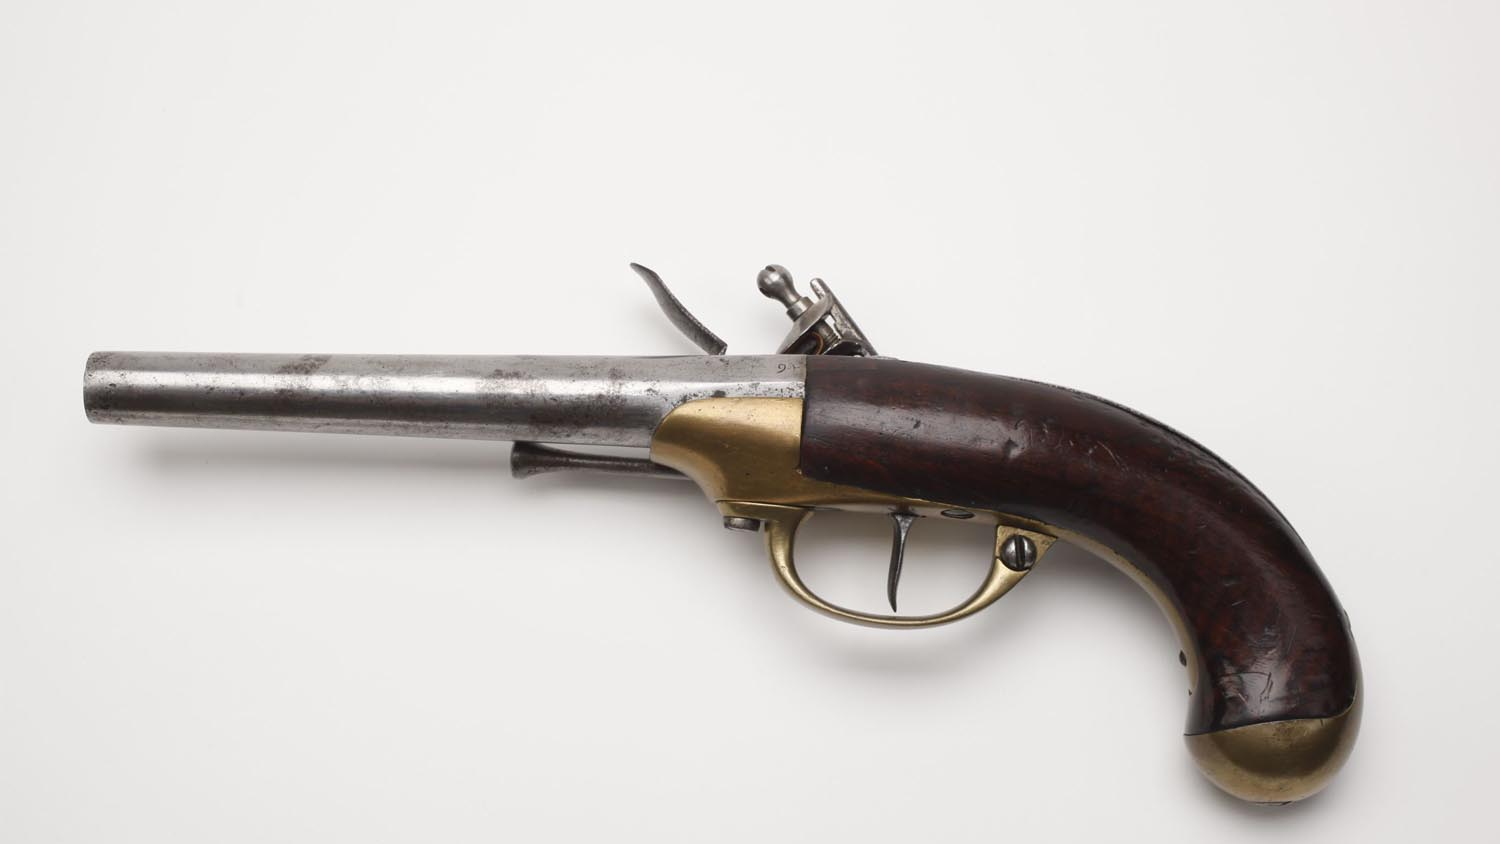 Gun of the Day: French St. Etienne Pistol